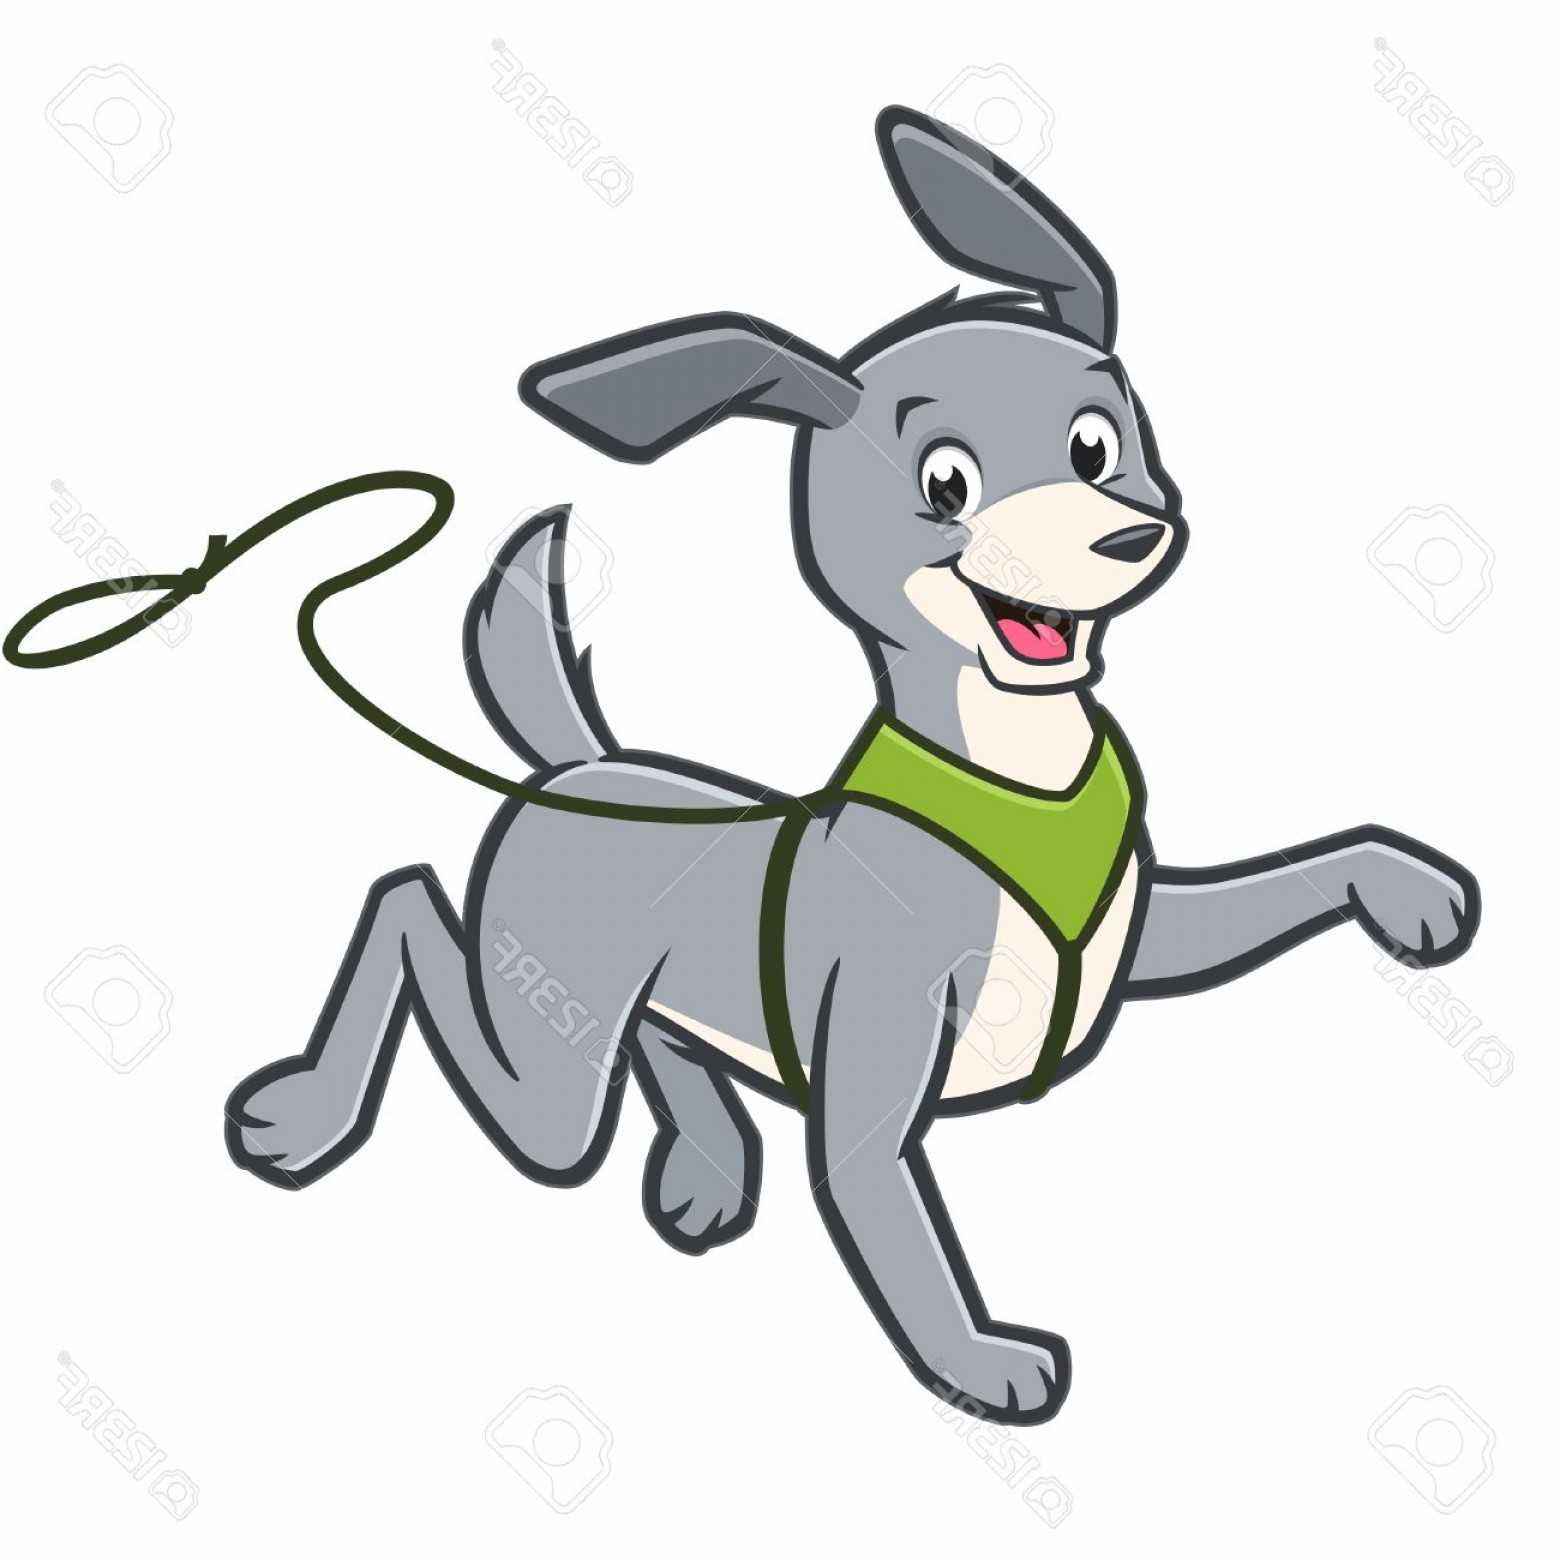 Bpxer Vector Art Happy Dog: Photostock Vector Vector Cartoon Happy Dog Walking On Leash